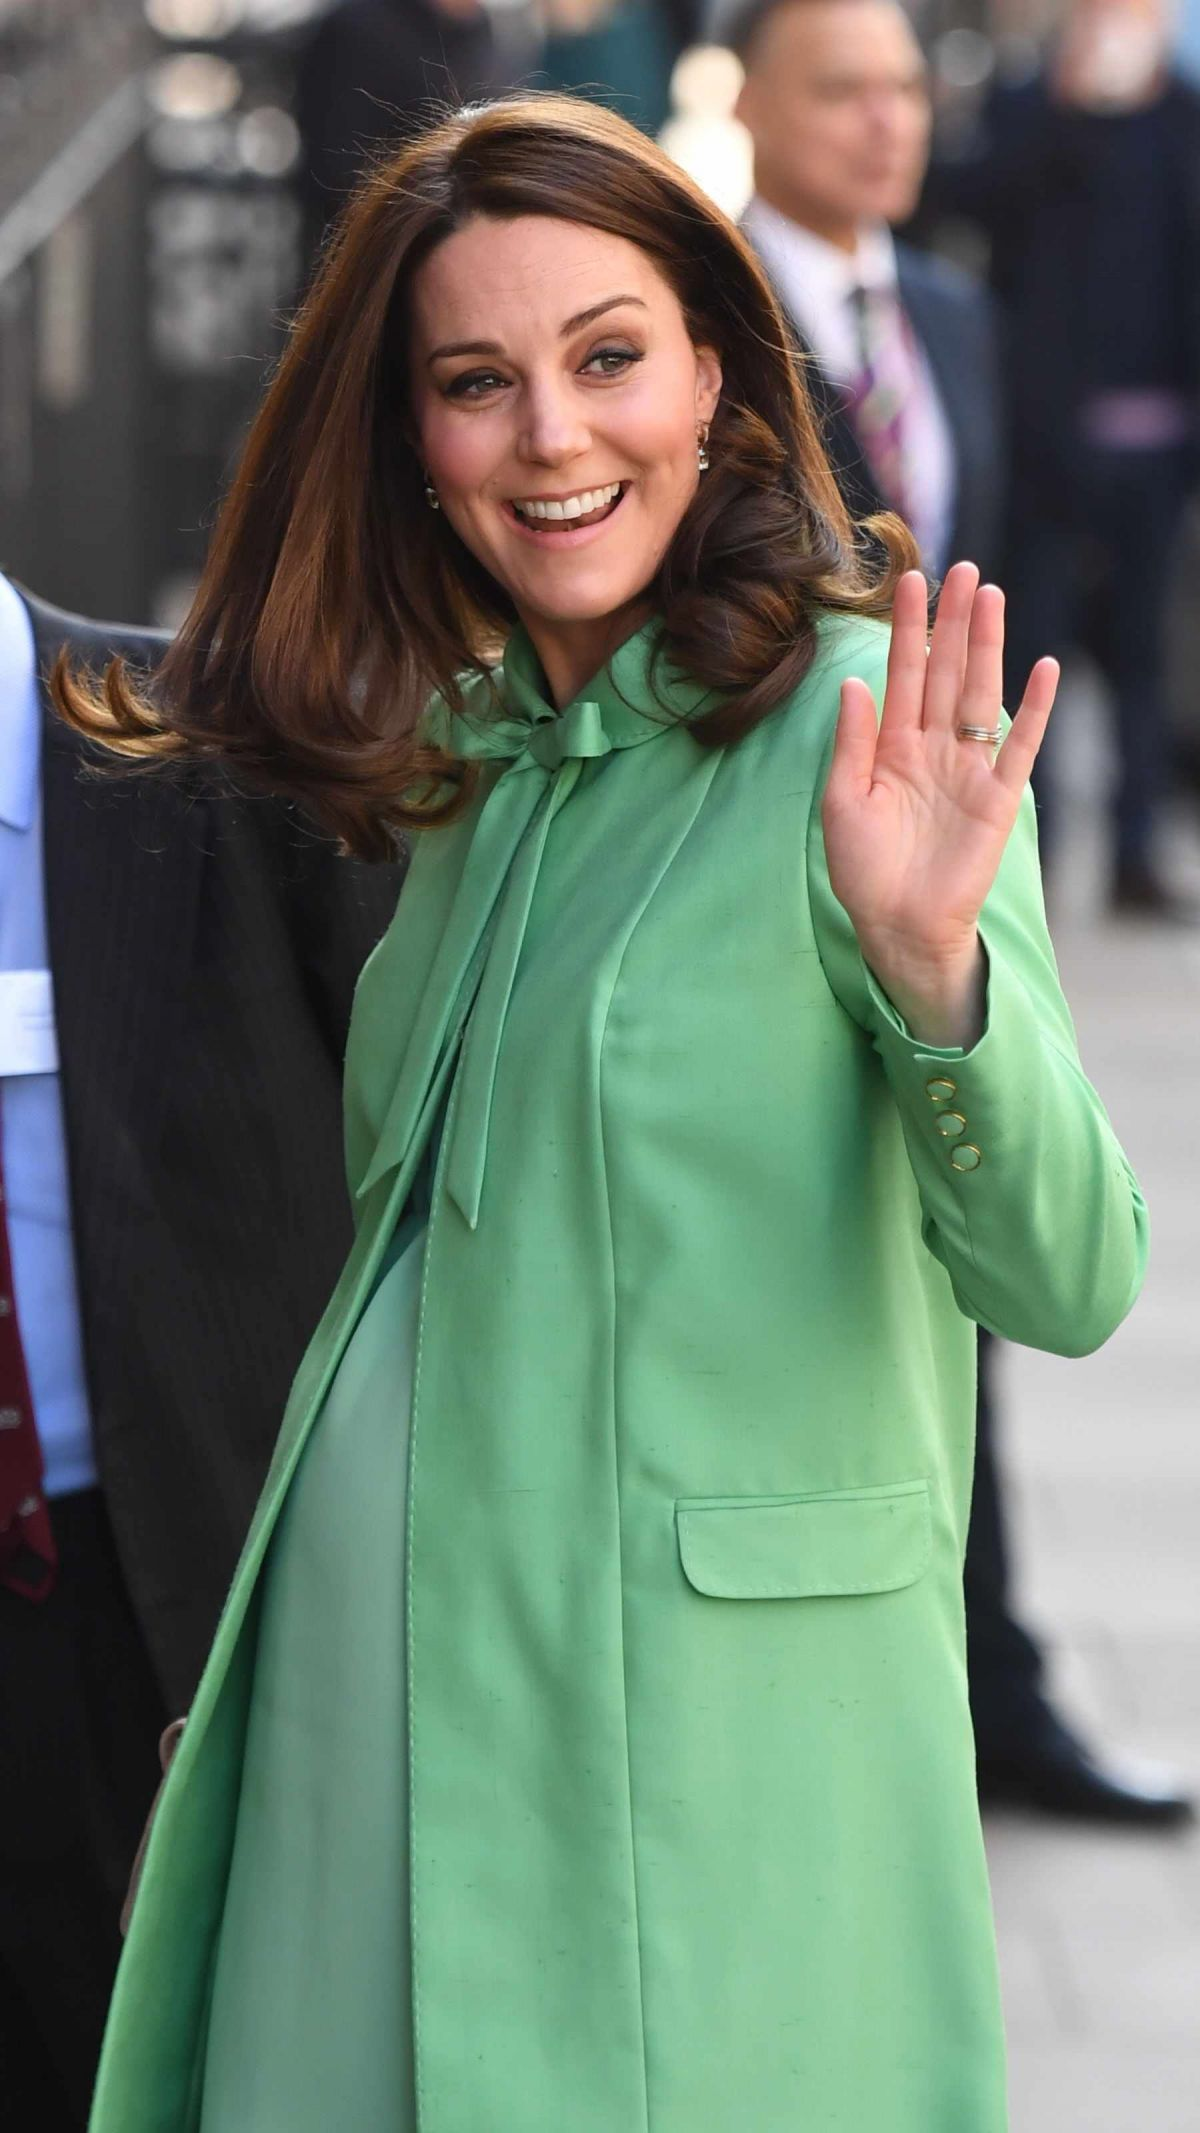 kate middleton arrives at royal society of medicine in london 03 21 2018 12 - Royal Kate Middleton